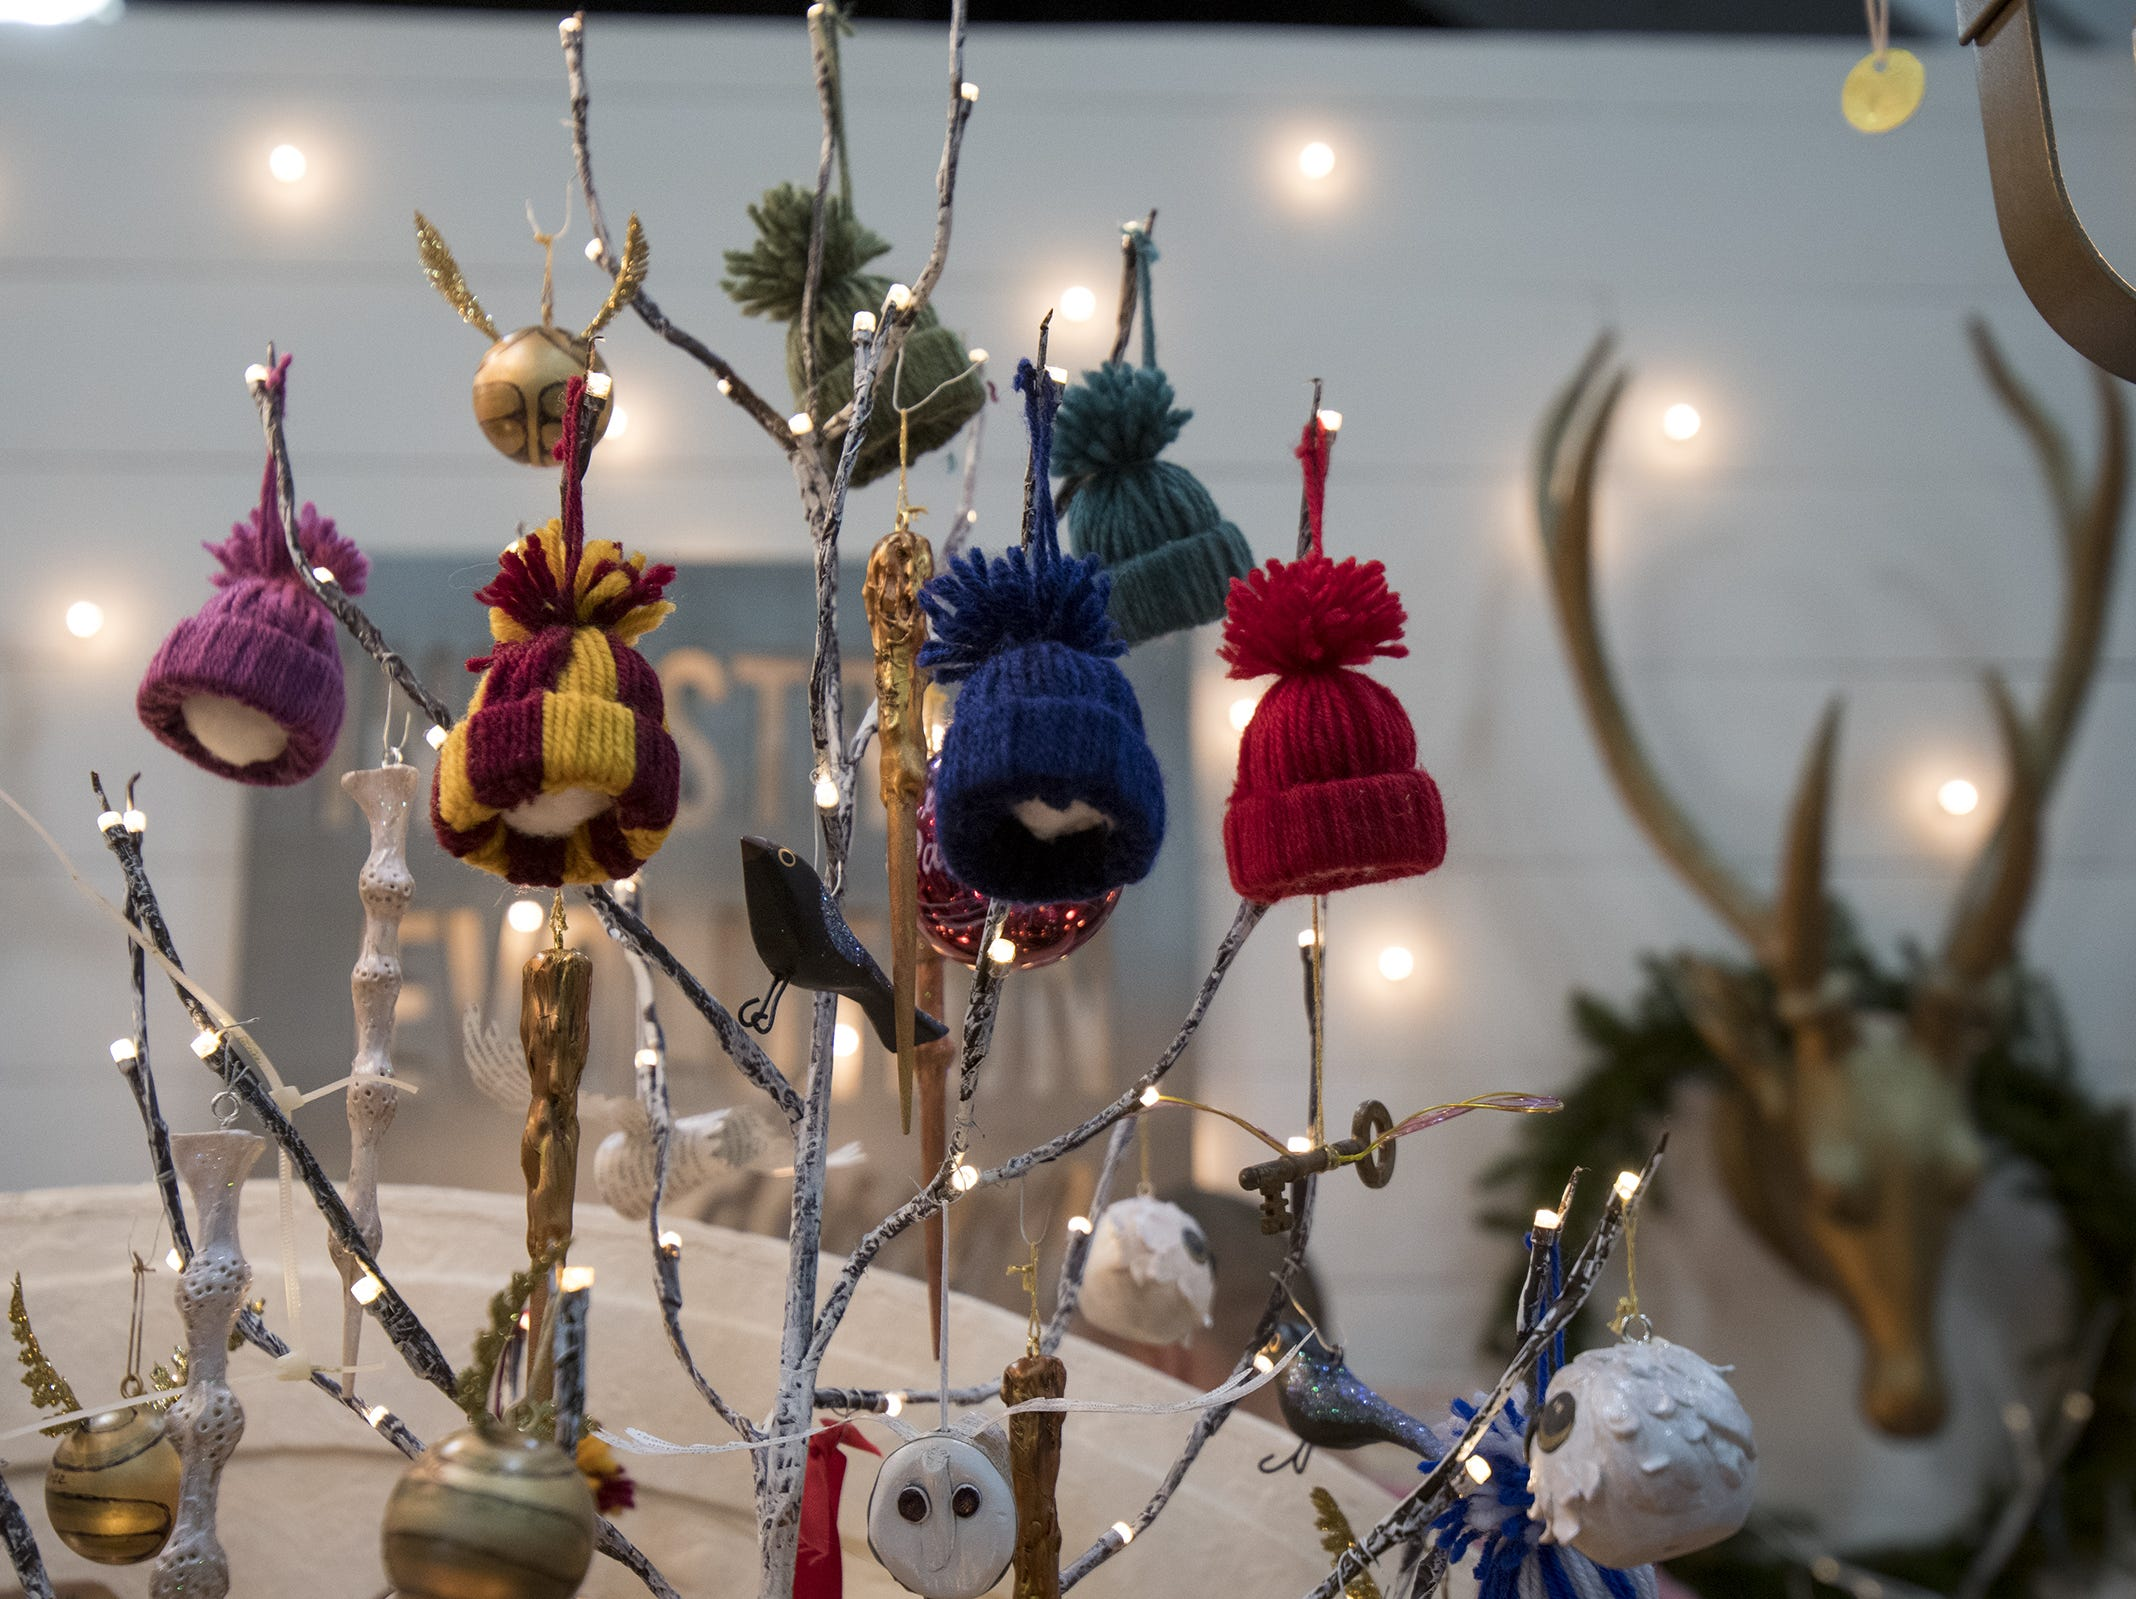 Industrial Evolution Design sells Harry Potter-themed ornaments and gifts during the Greater Cincinnati Holiday Market at the Duke Energy Center Friday, November 2, 2018 in Cincinnati, Ohio.